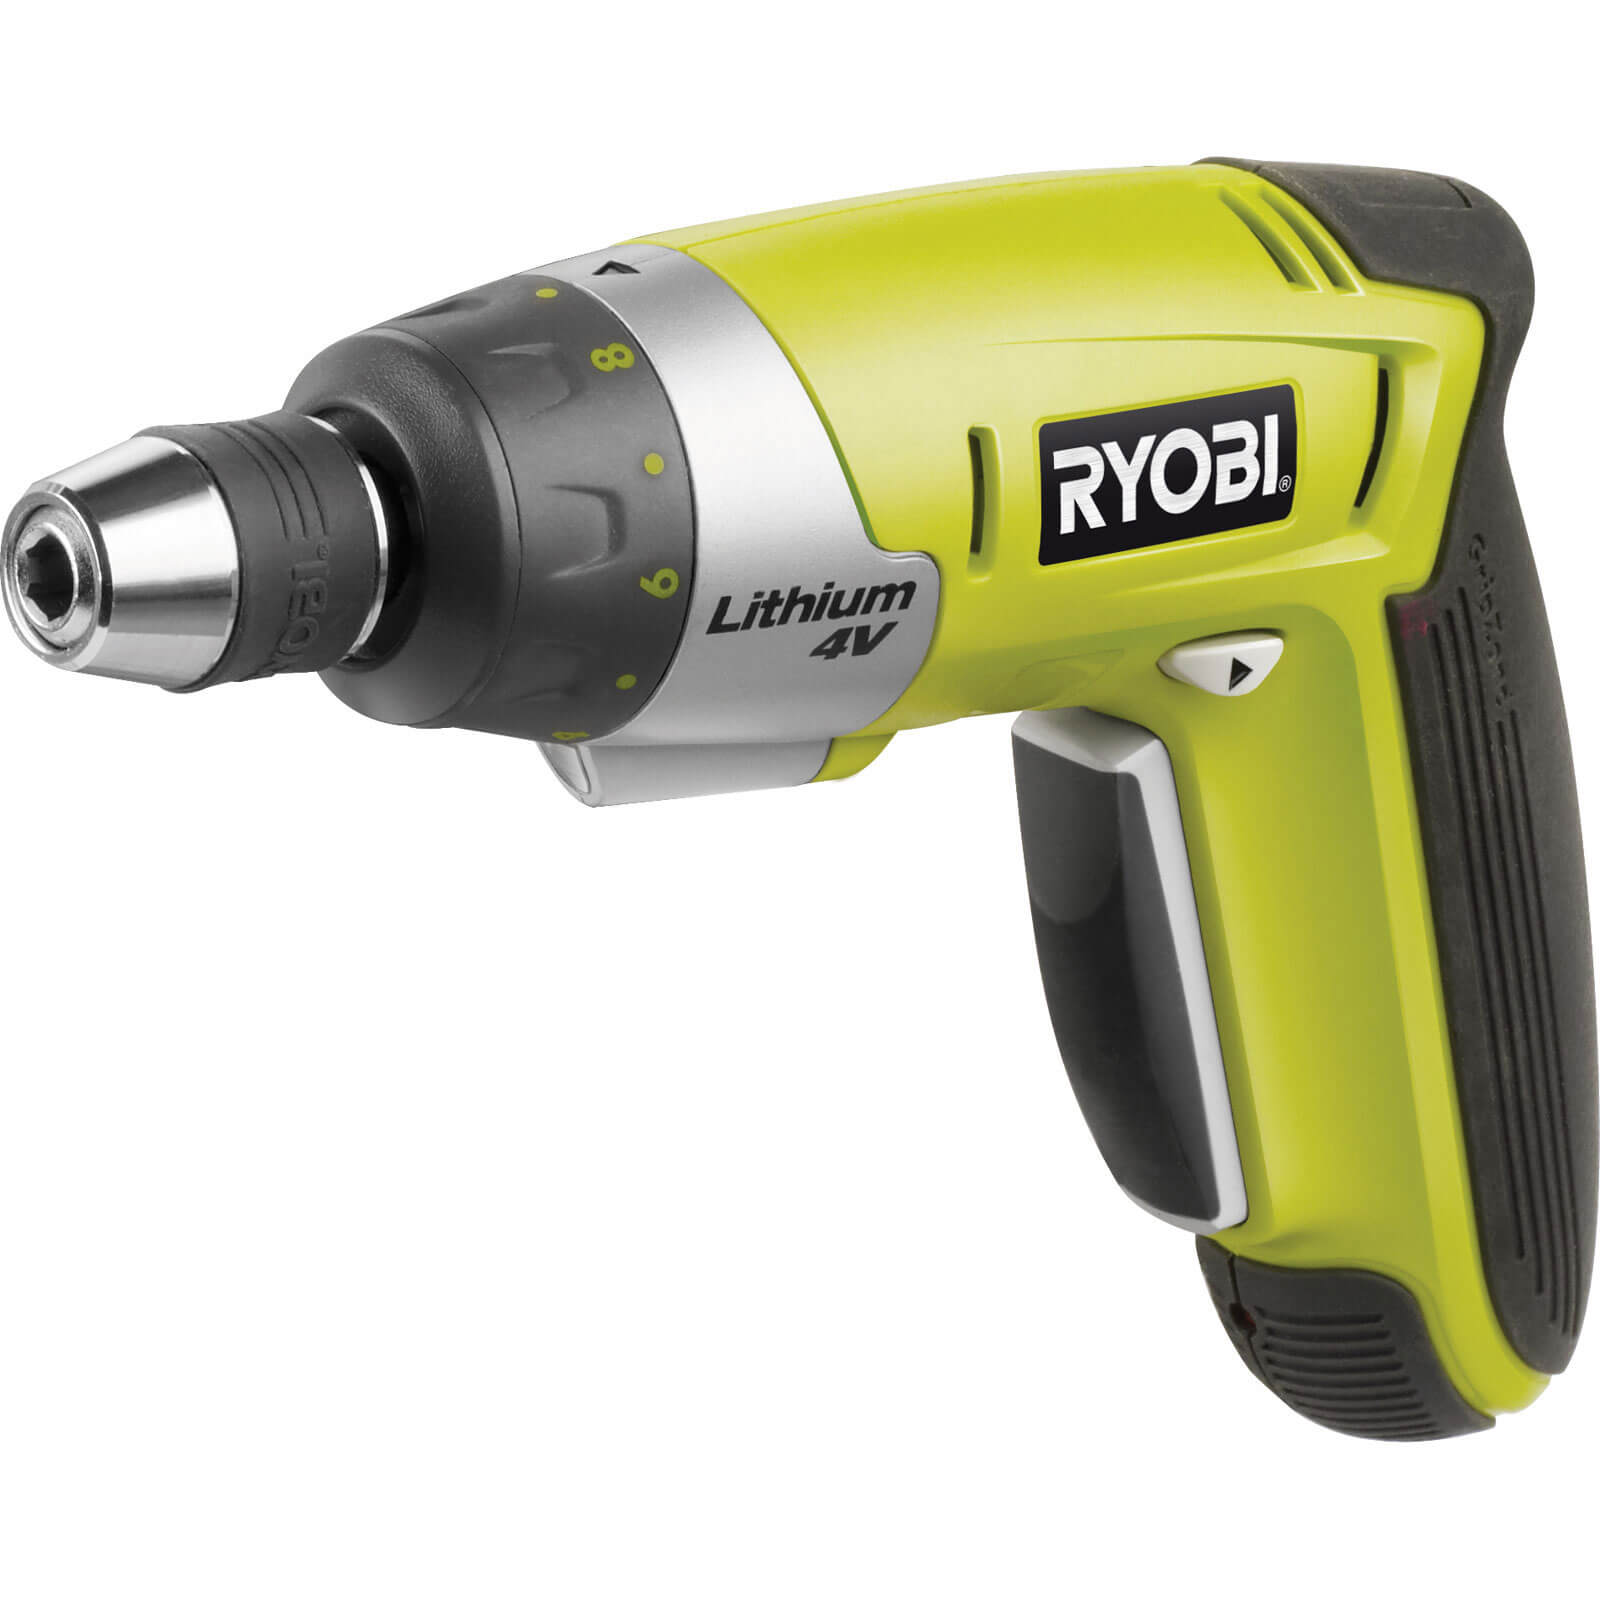 buy cheap ryobi cordless compare power tools prices for. Black Bedroom Furniture Sets. Home Design Ideas